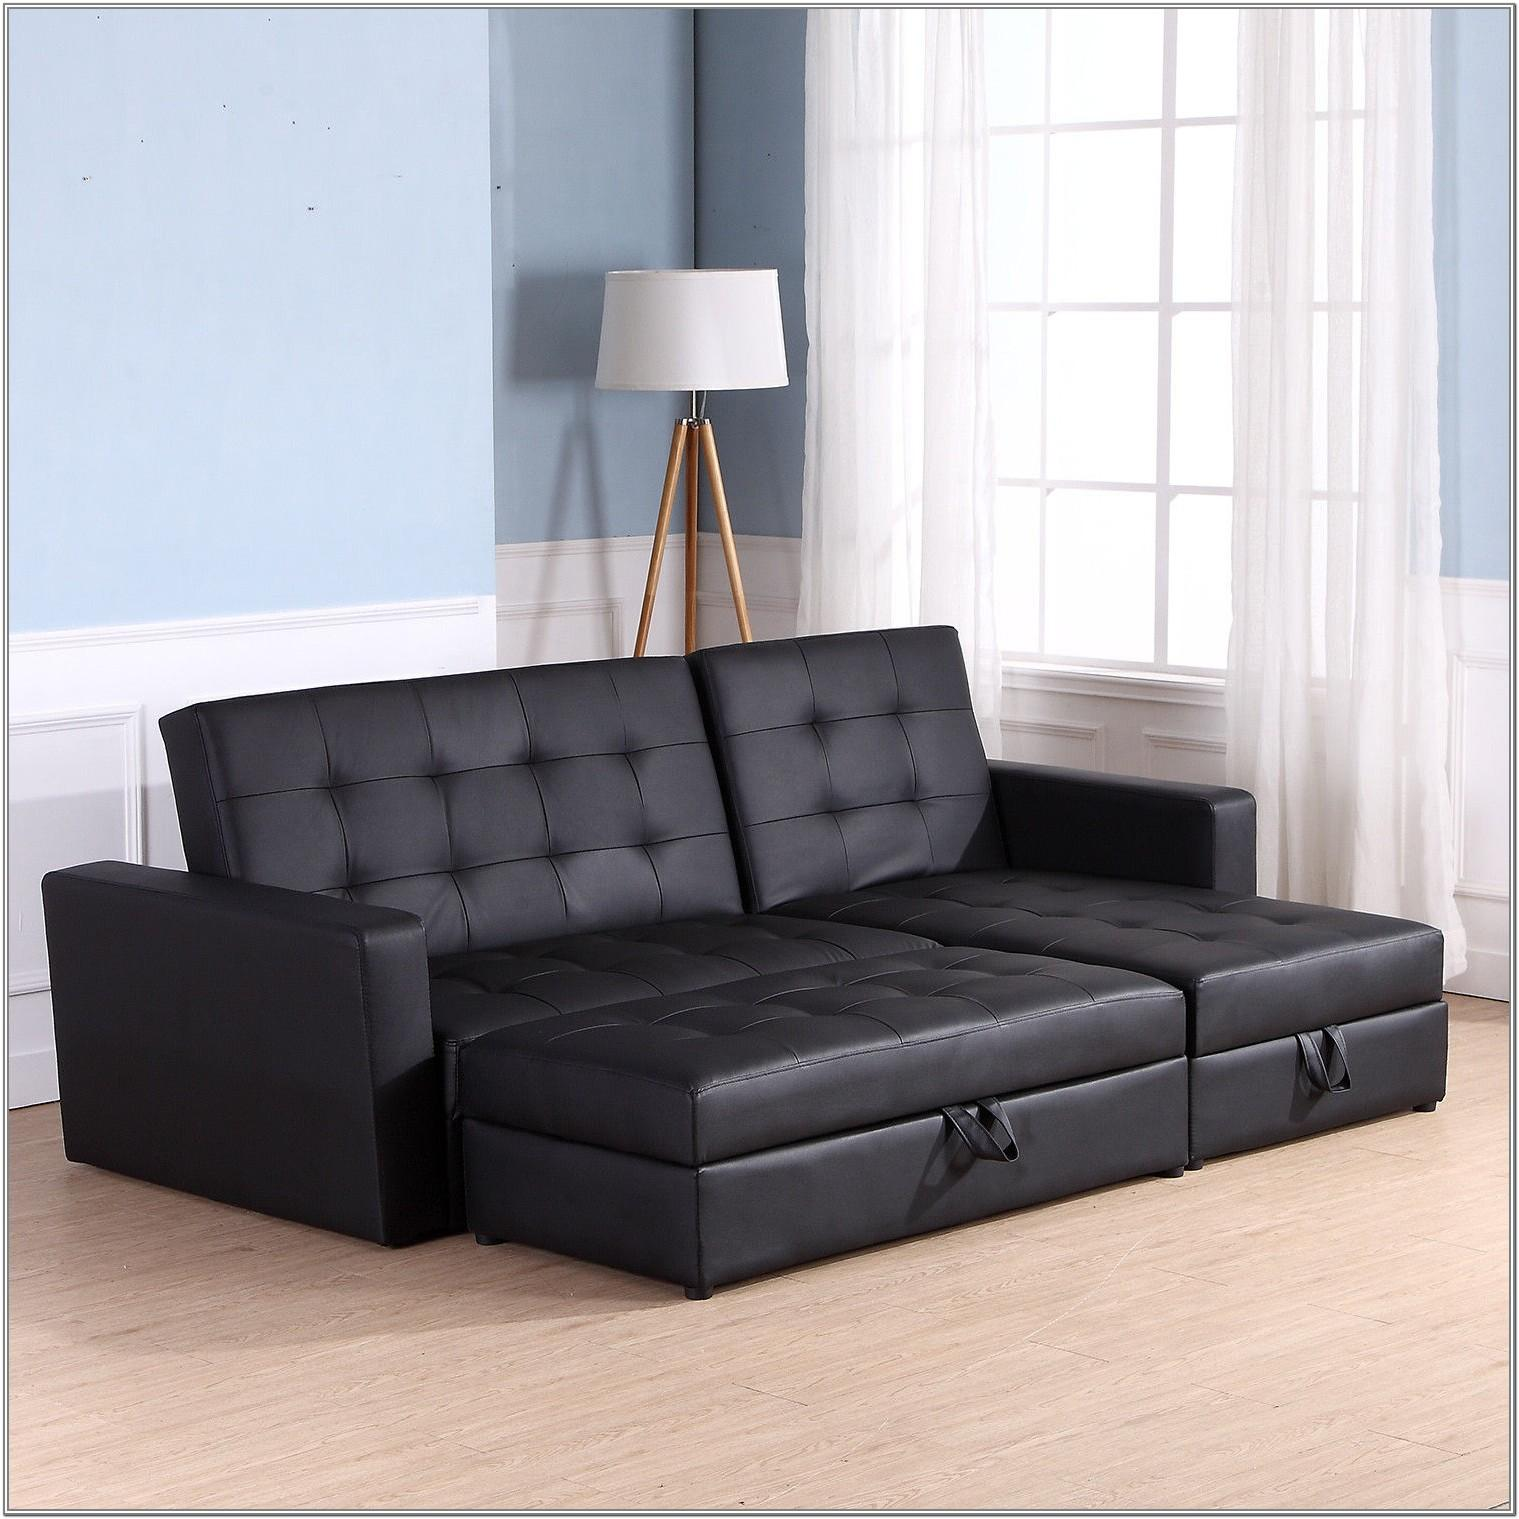 Sectional Living Room Couch Bed